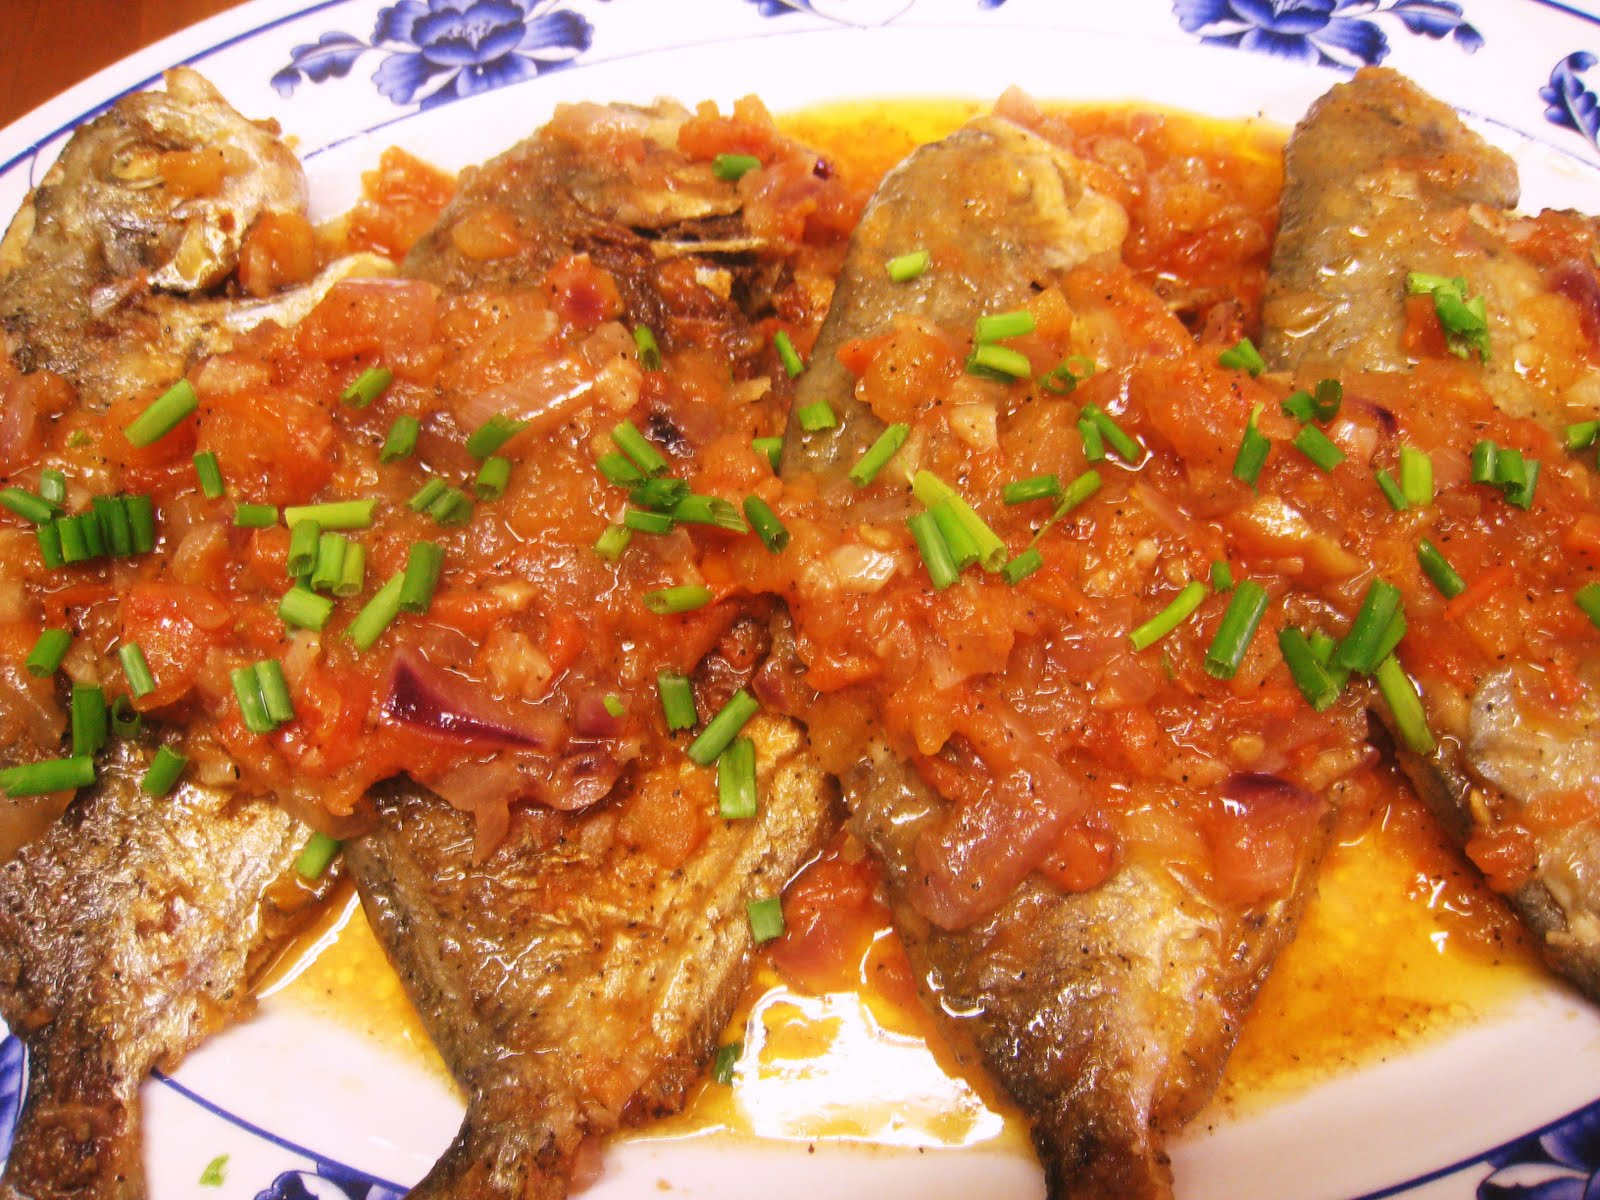 West african origins of the july southern fish fry tradition for African fish recipes